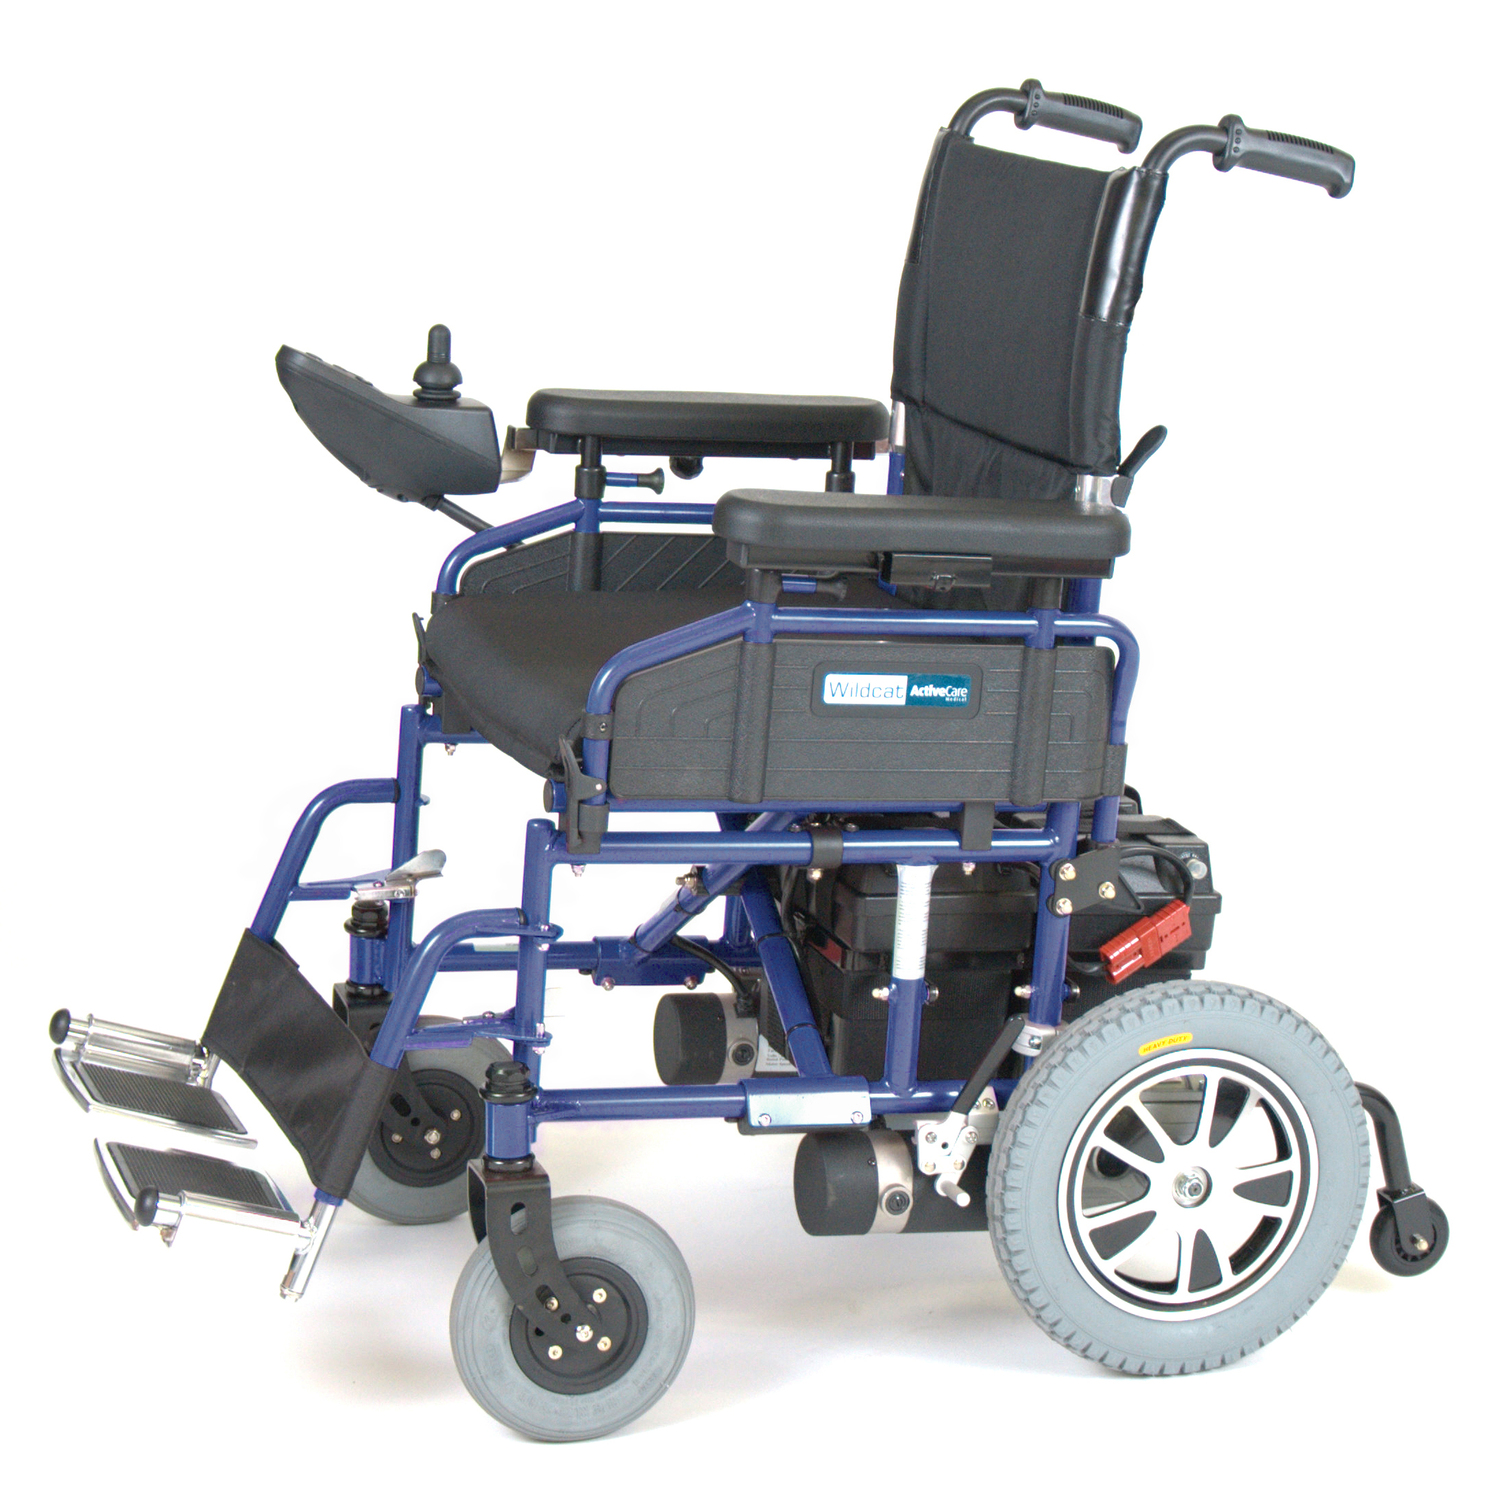 Activecare wildcat folding power wheelchair by oj commerce wildcat20b